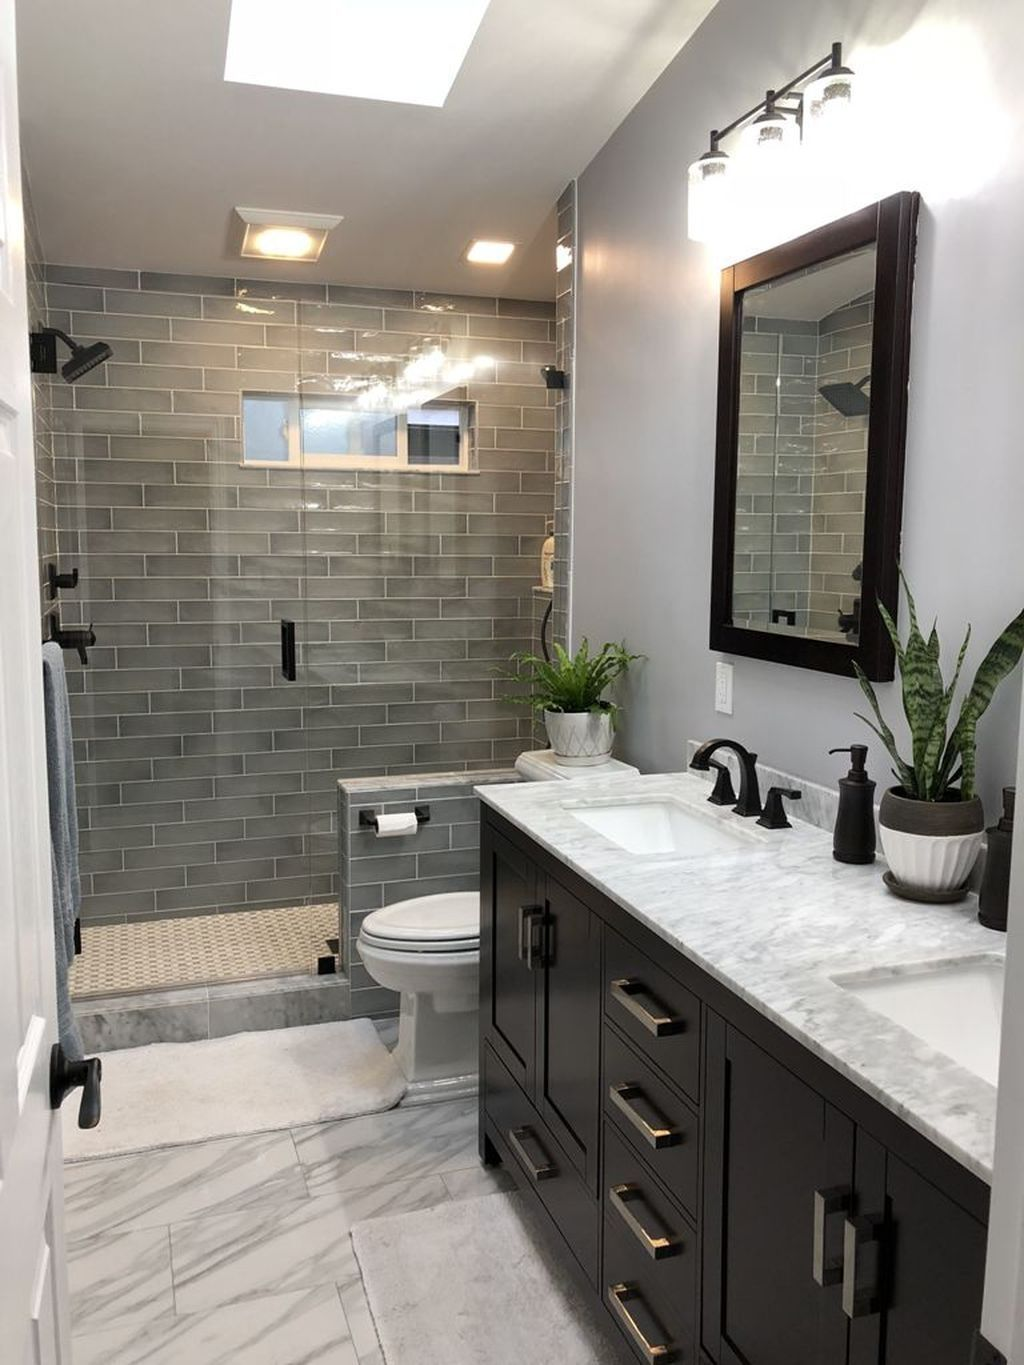 42 stunning master bathroom design ideas for your home